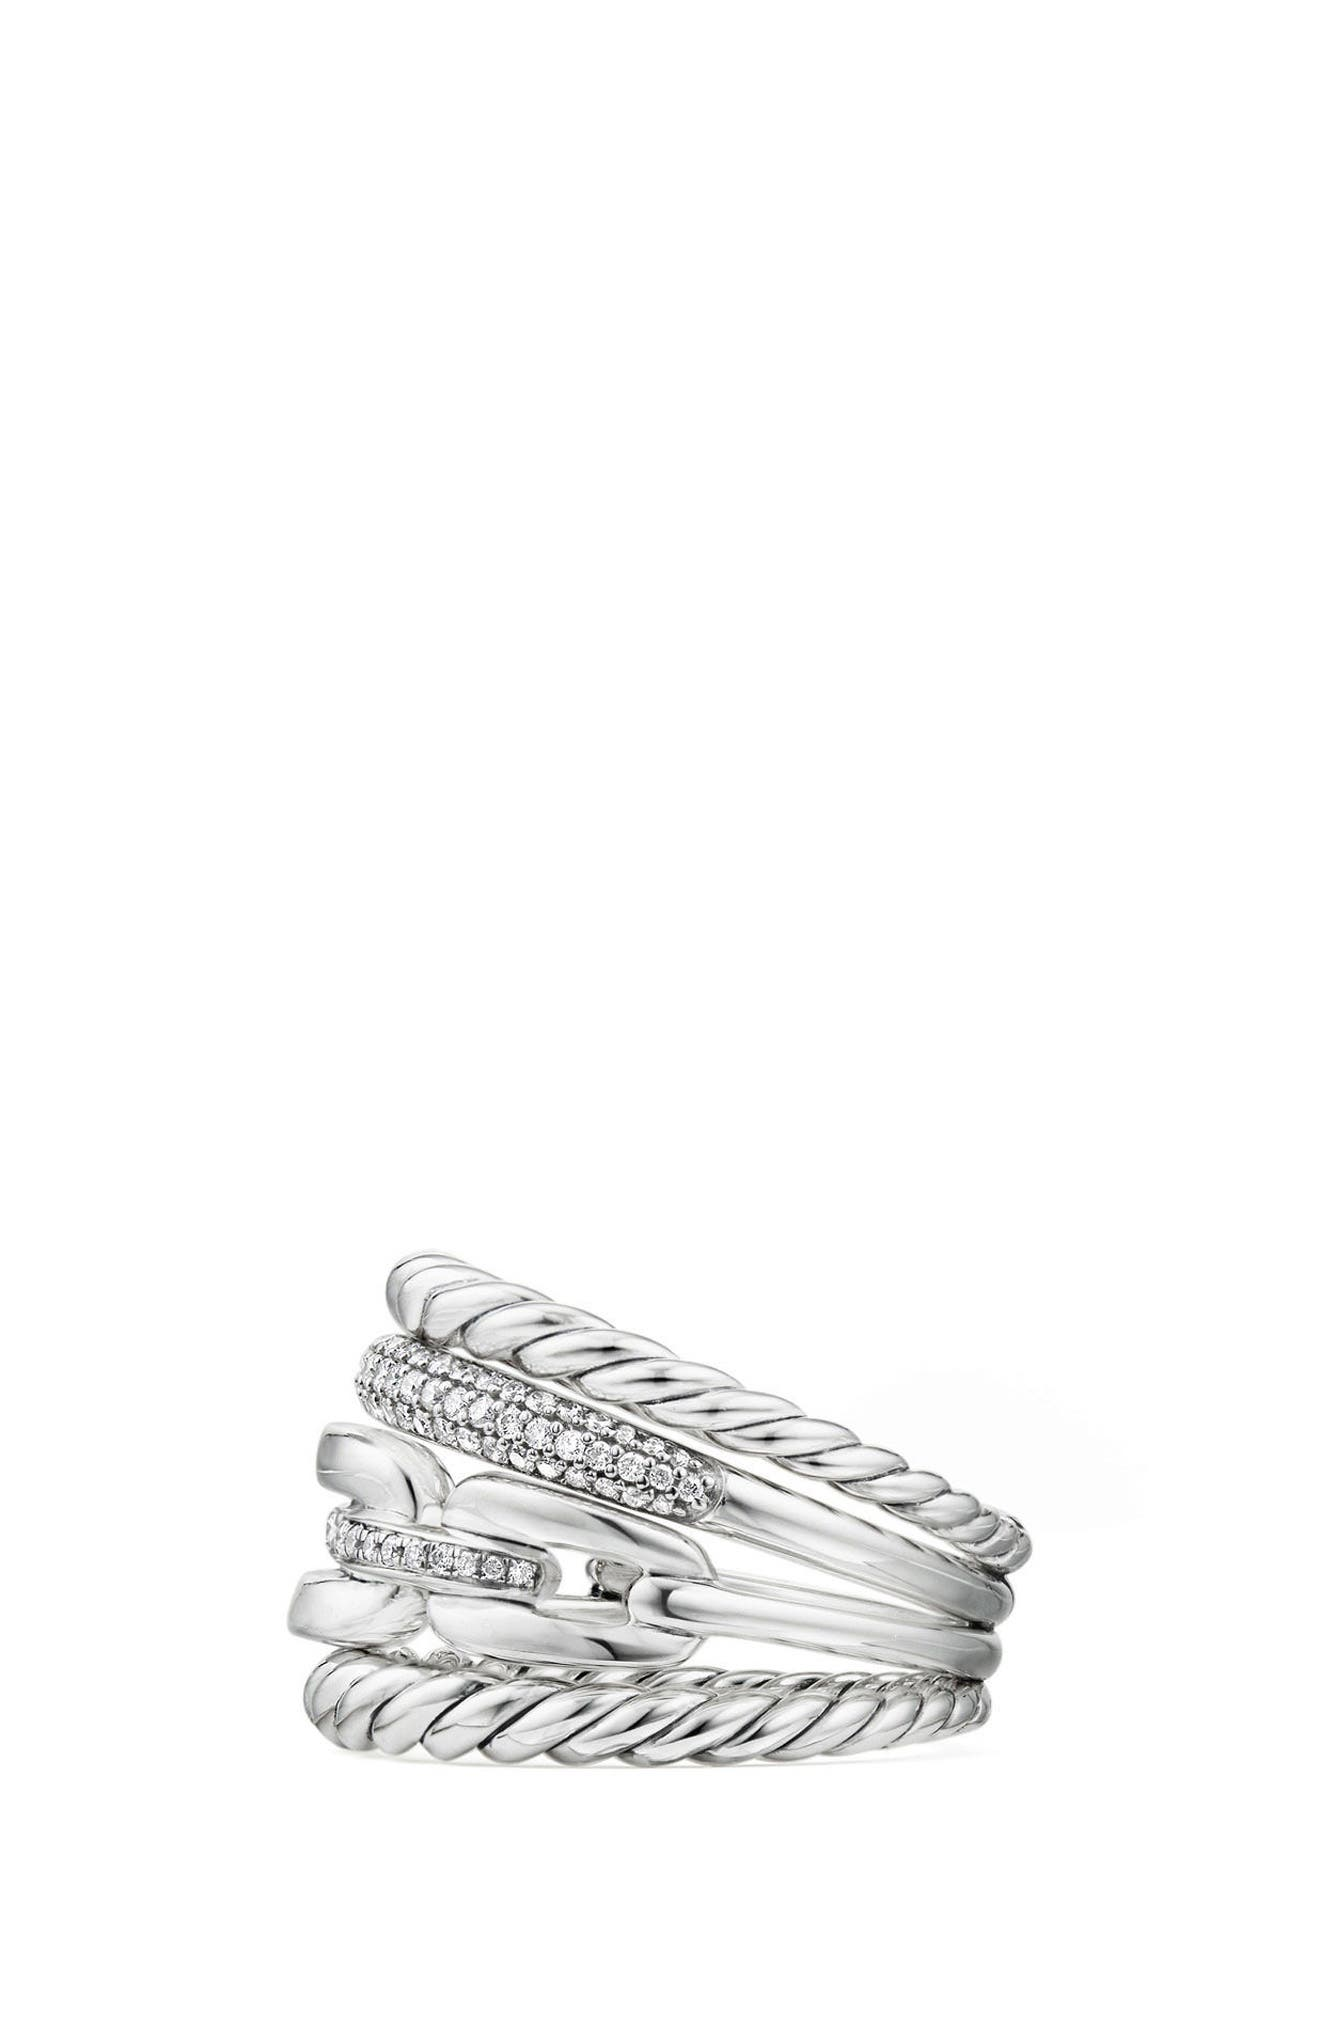 Wellesley Four-Row Ring with Diamonds,                             Alternate thumbnail 3, color,                             Silver